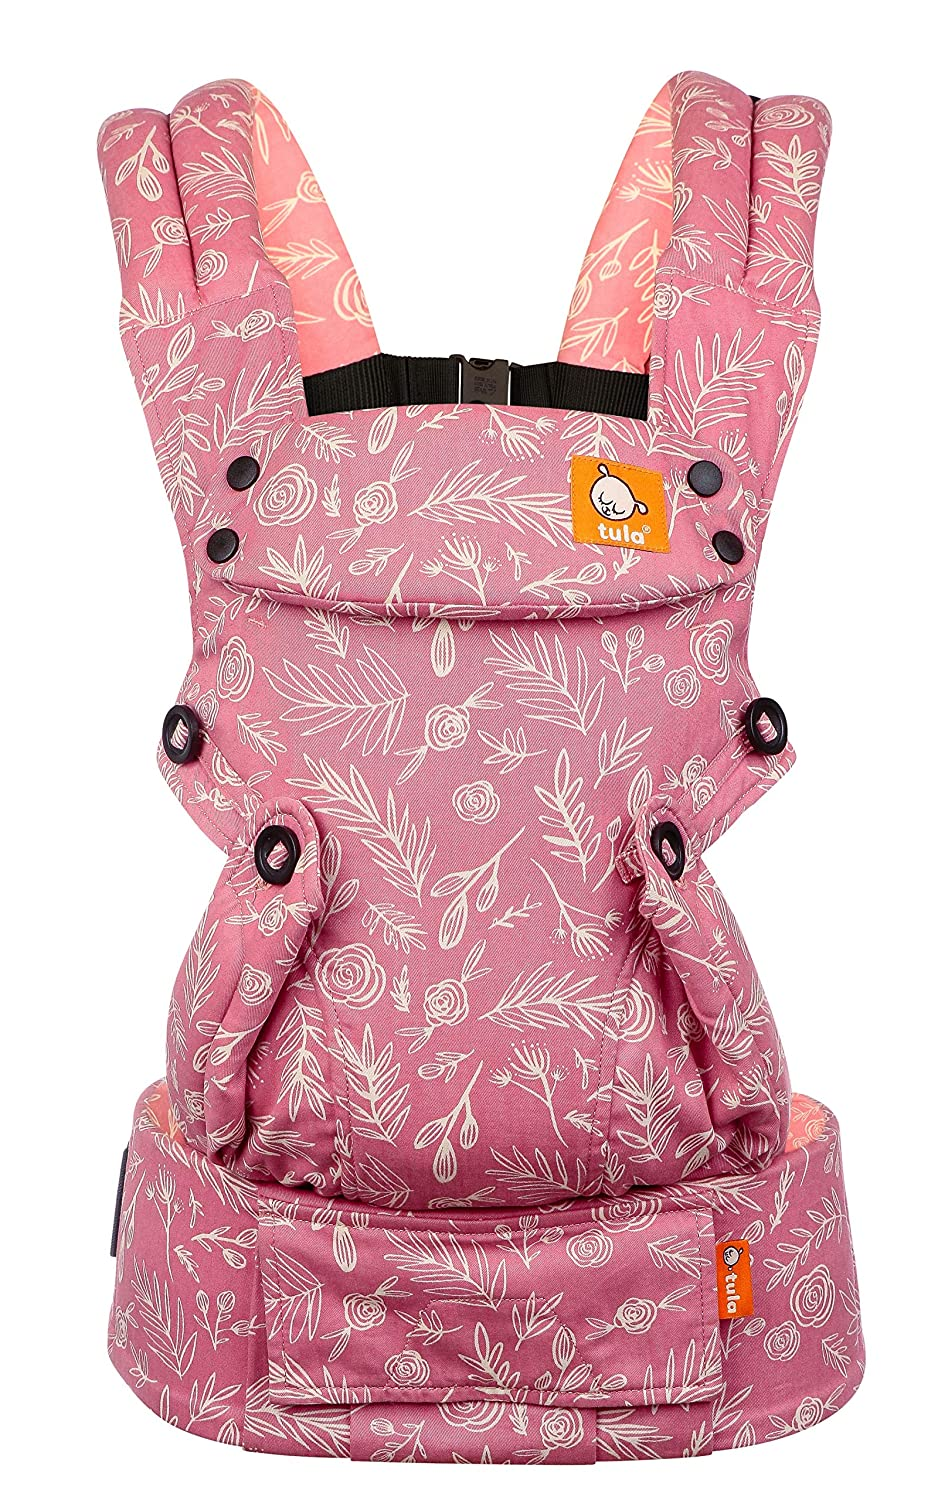 Baby Tula Explore Bloom One Size